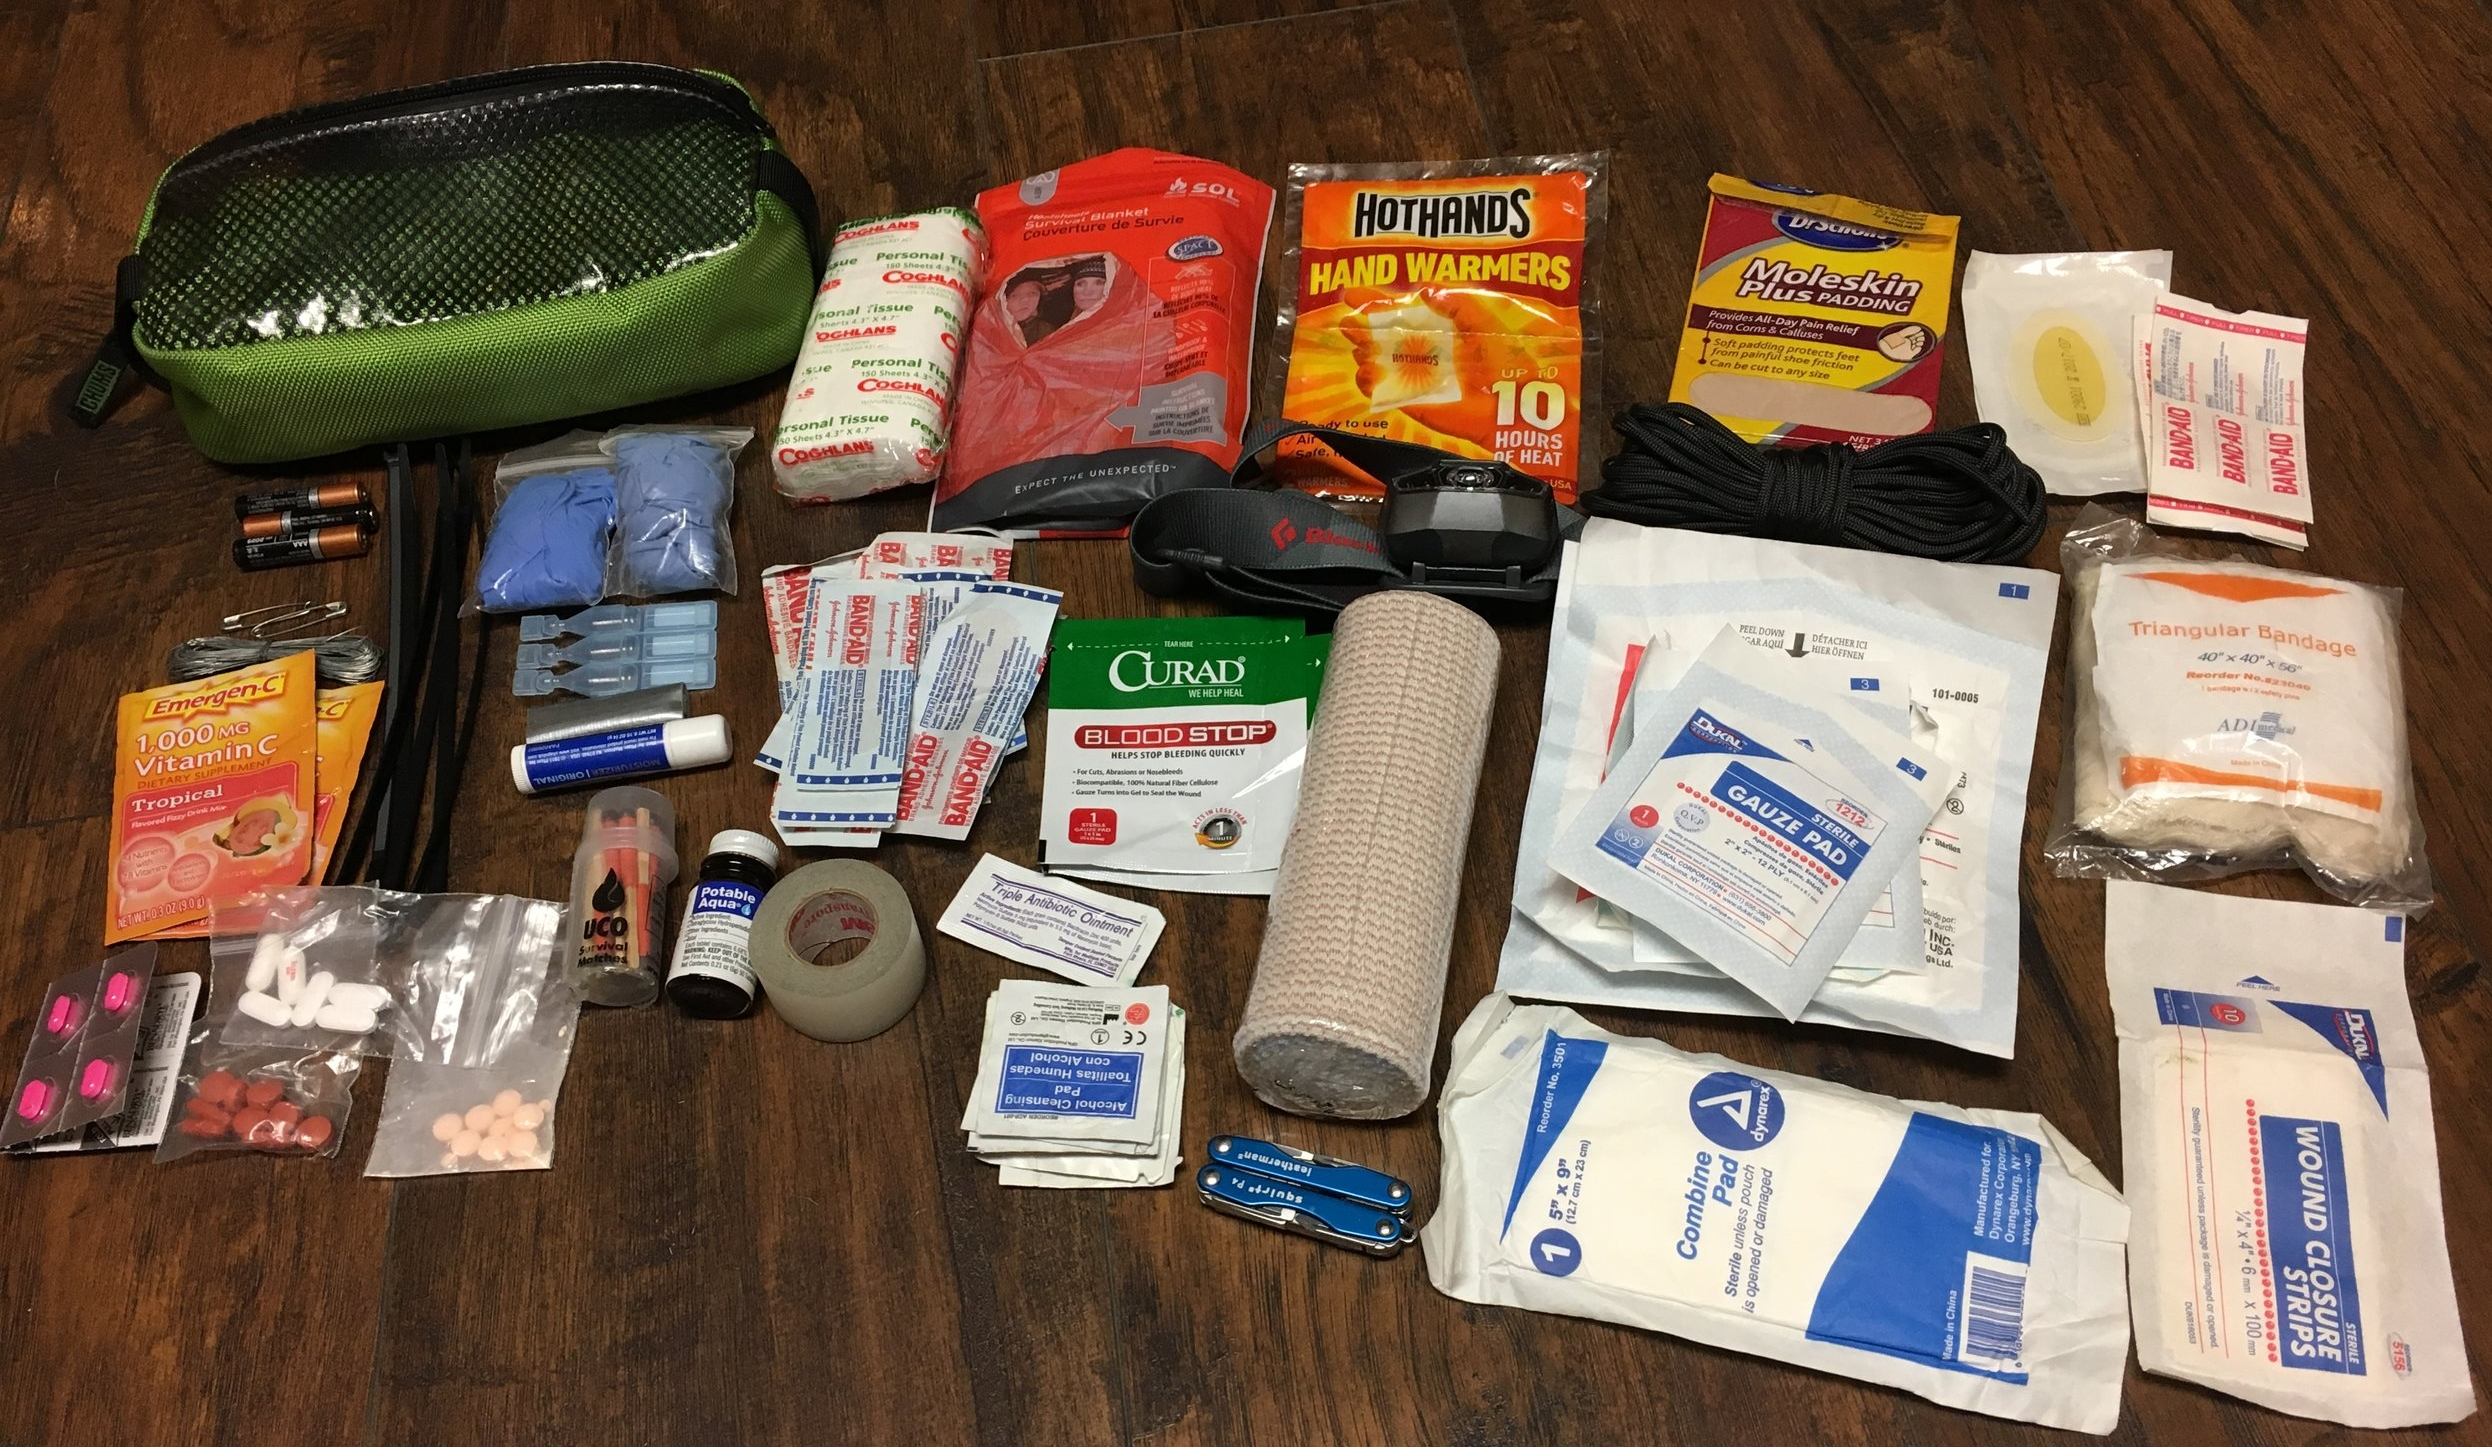 The contents of my personal kit